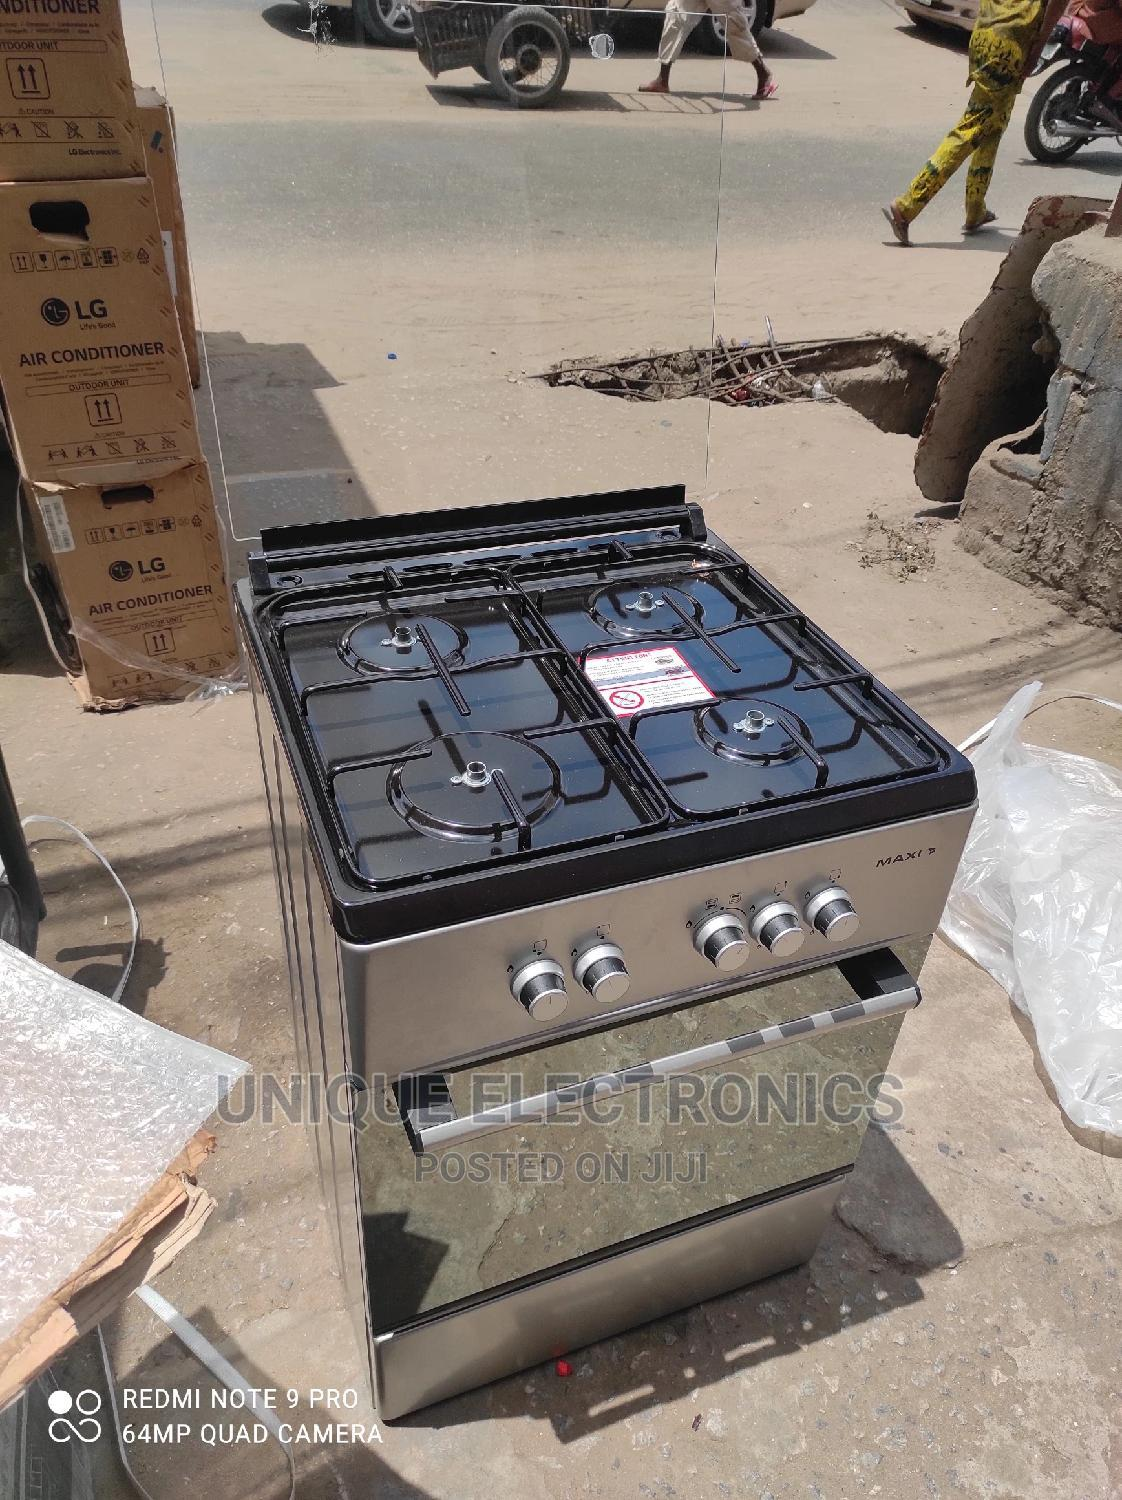 New Maxi Gas Cooker 4 Gas Auto Ignition Cooker + Oven Grill